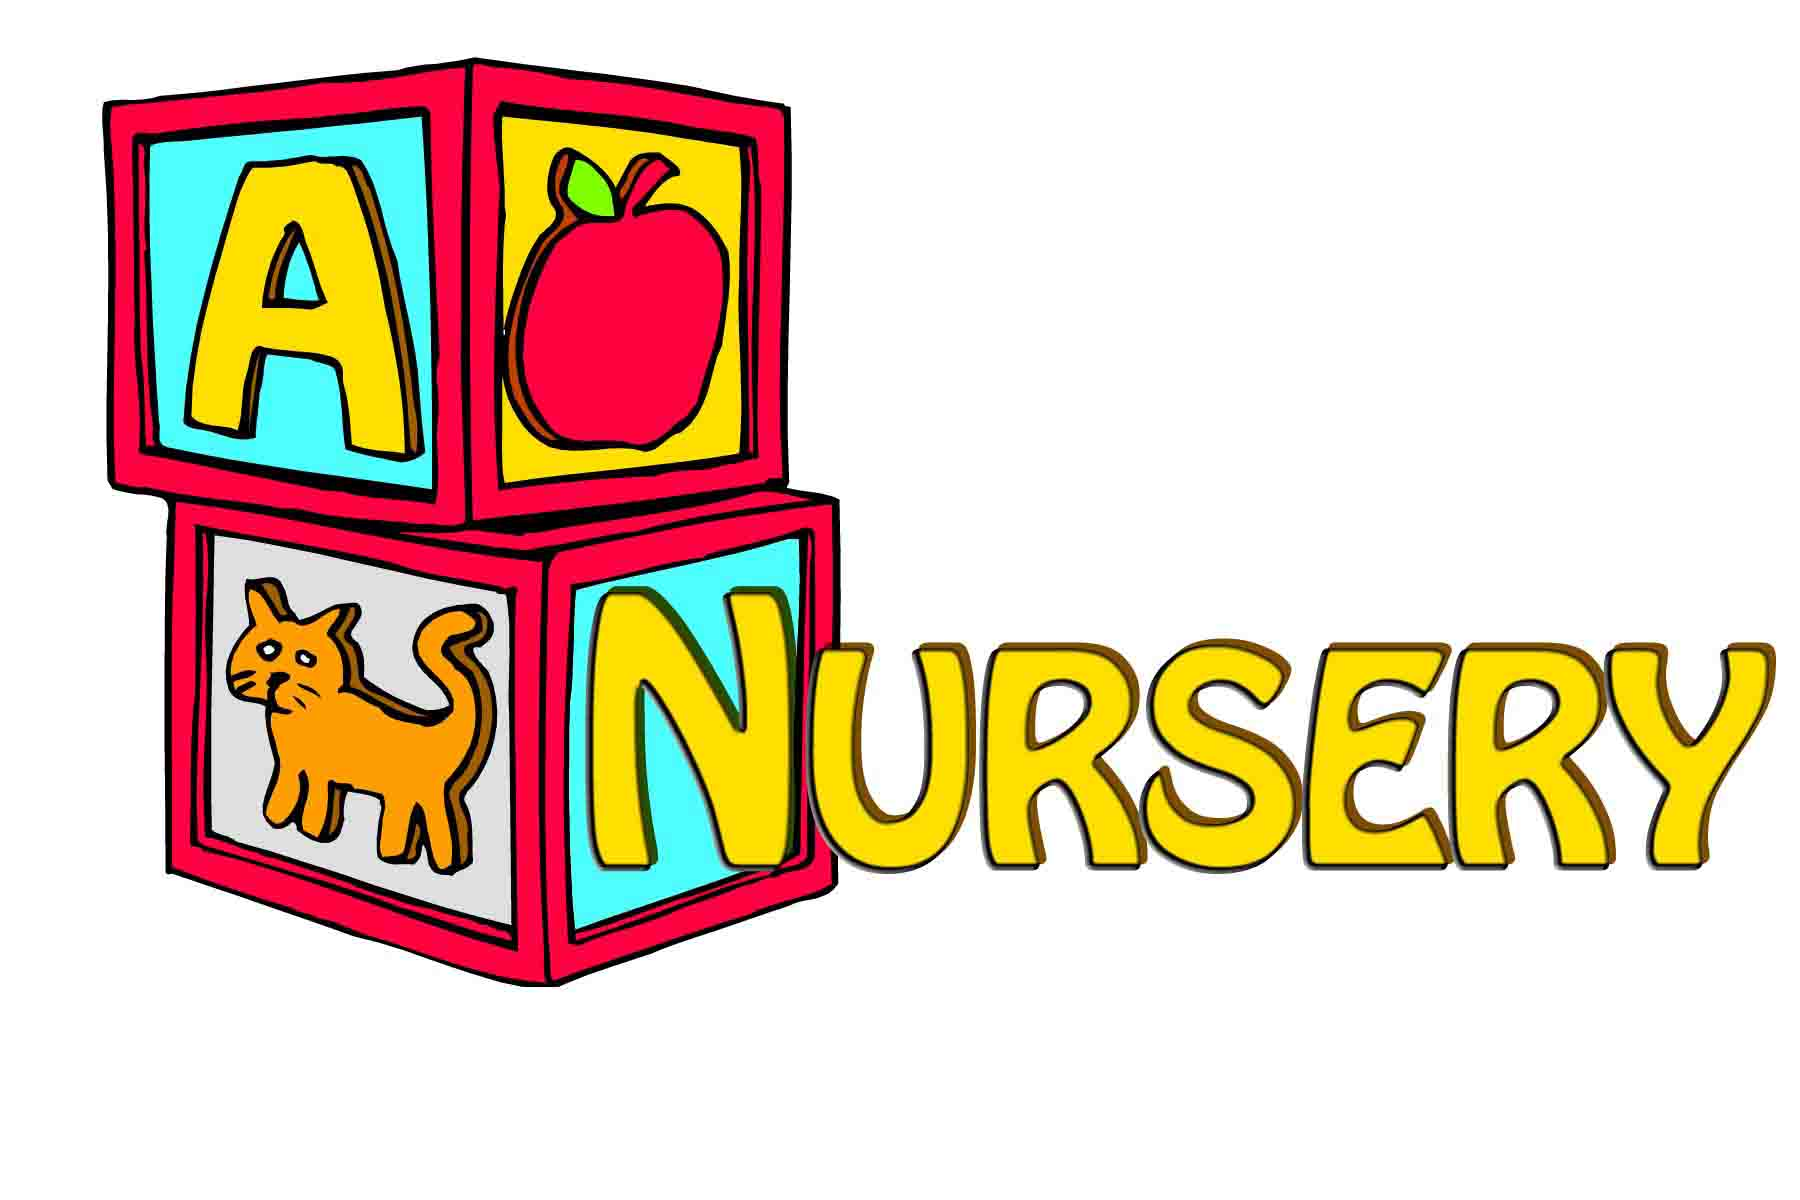 Nursery Workers Needed Clipart-Nursery Workers Needed Clipart-16